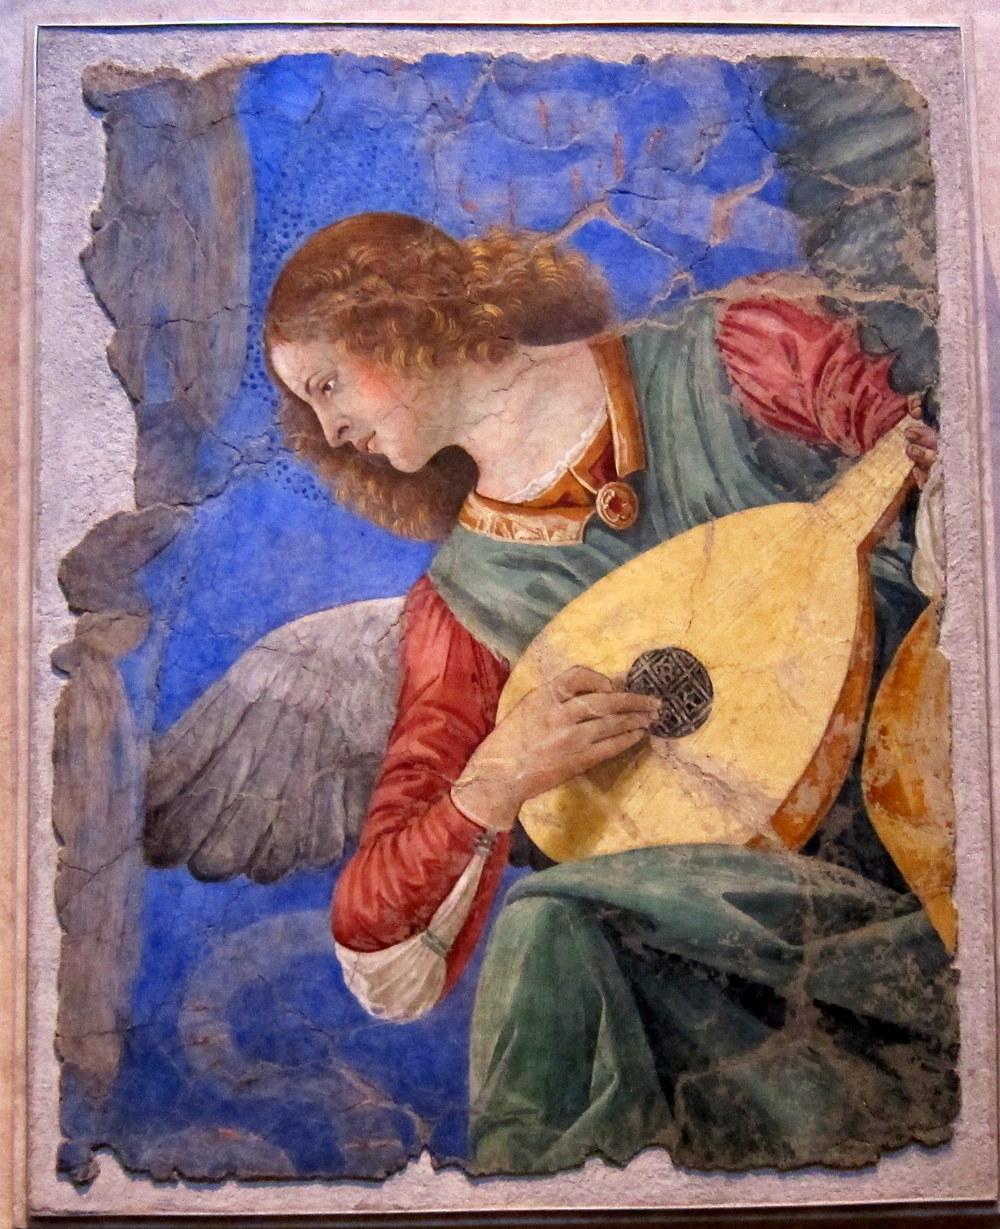 Melozzo da Forli, 1438-1494.   Italian fresco at the Vatican Museums, Pinacoteca.